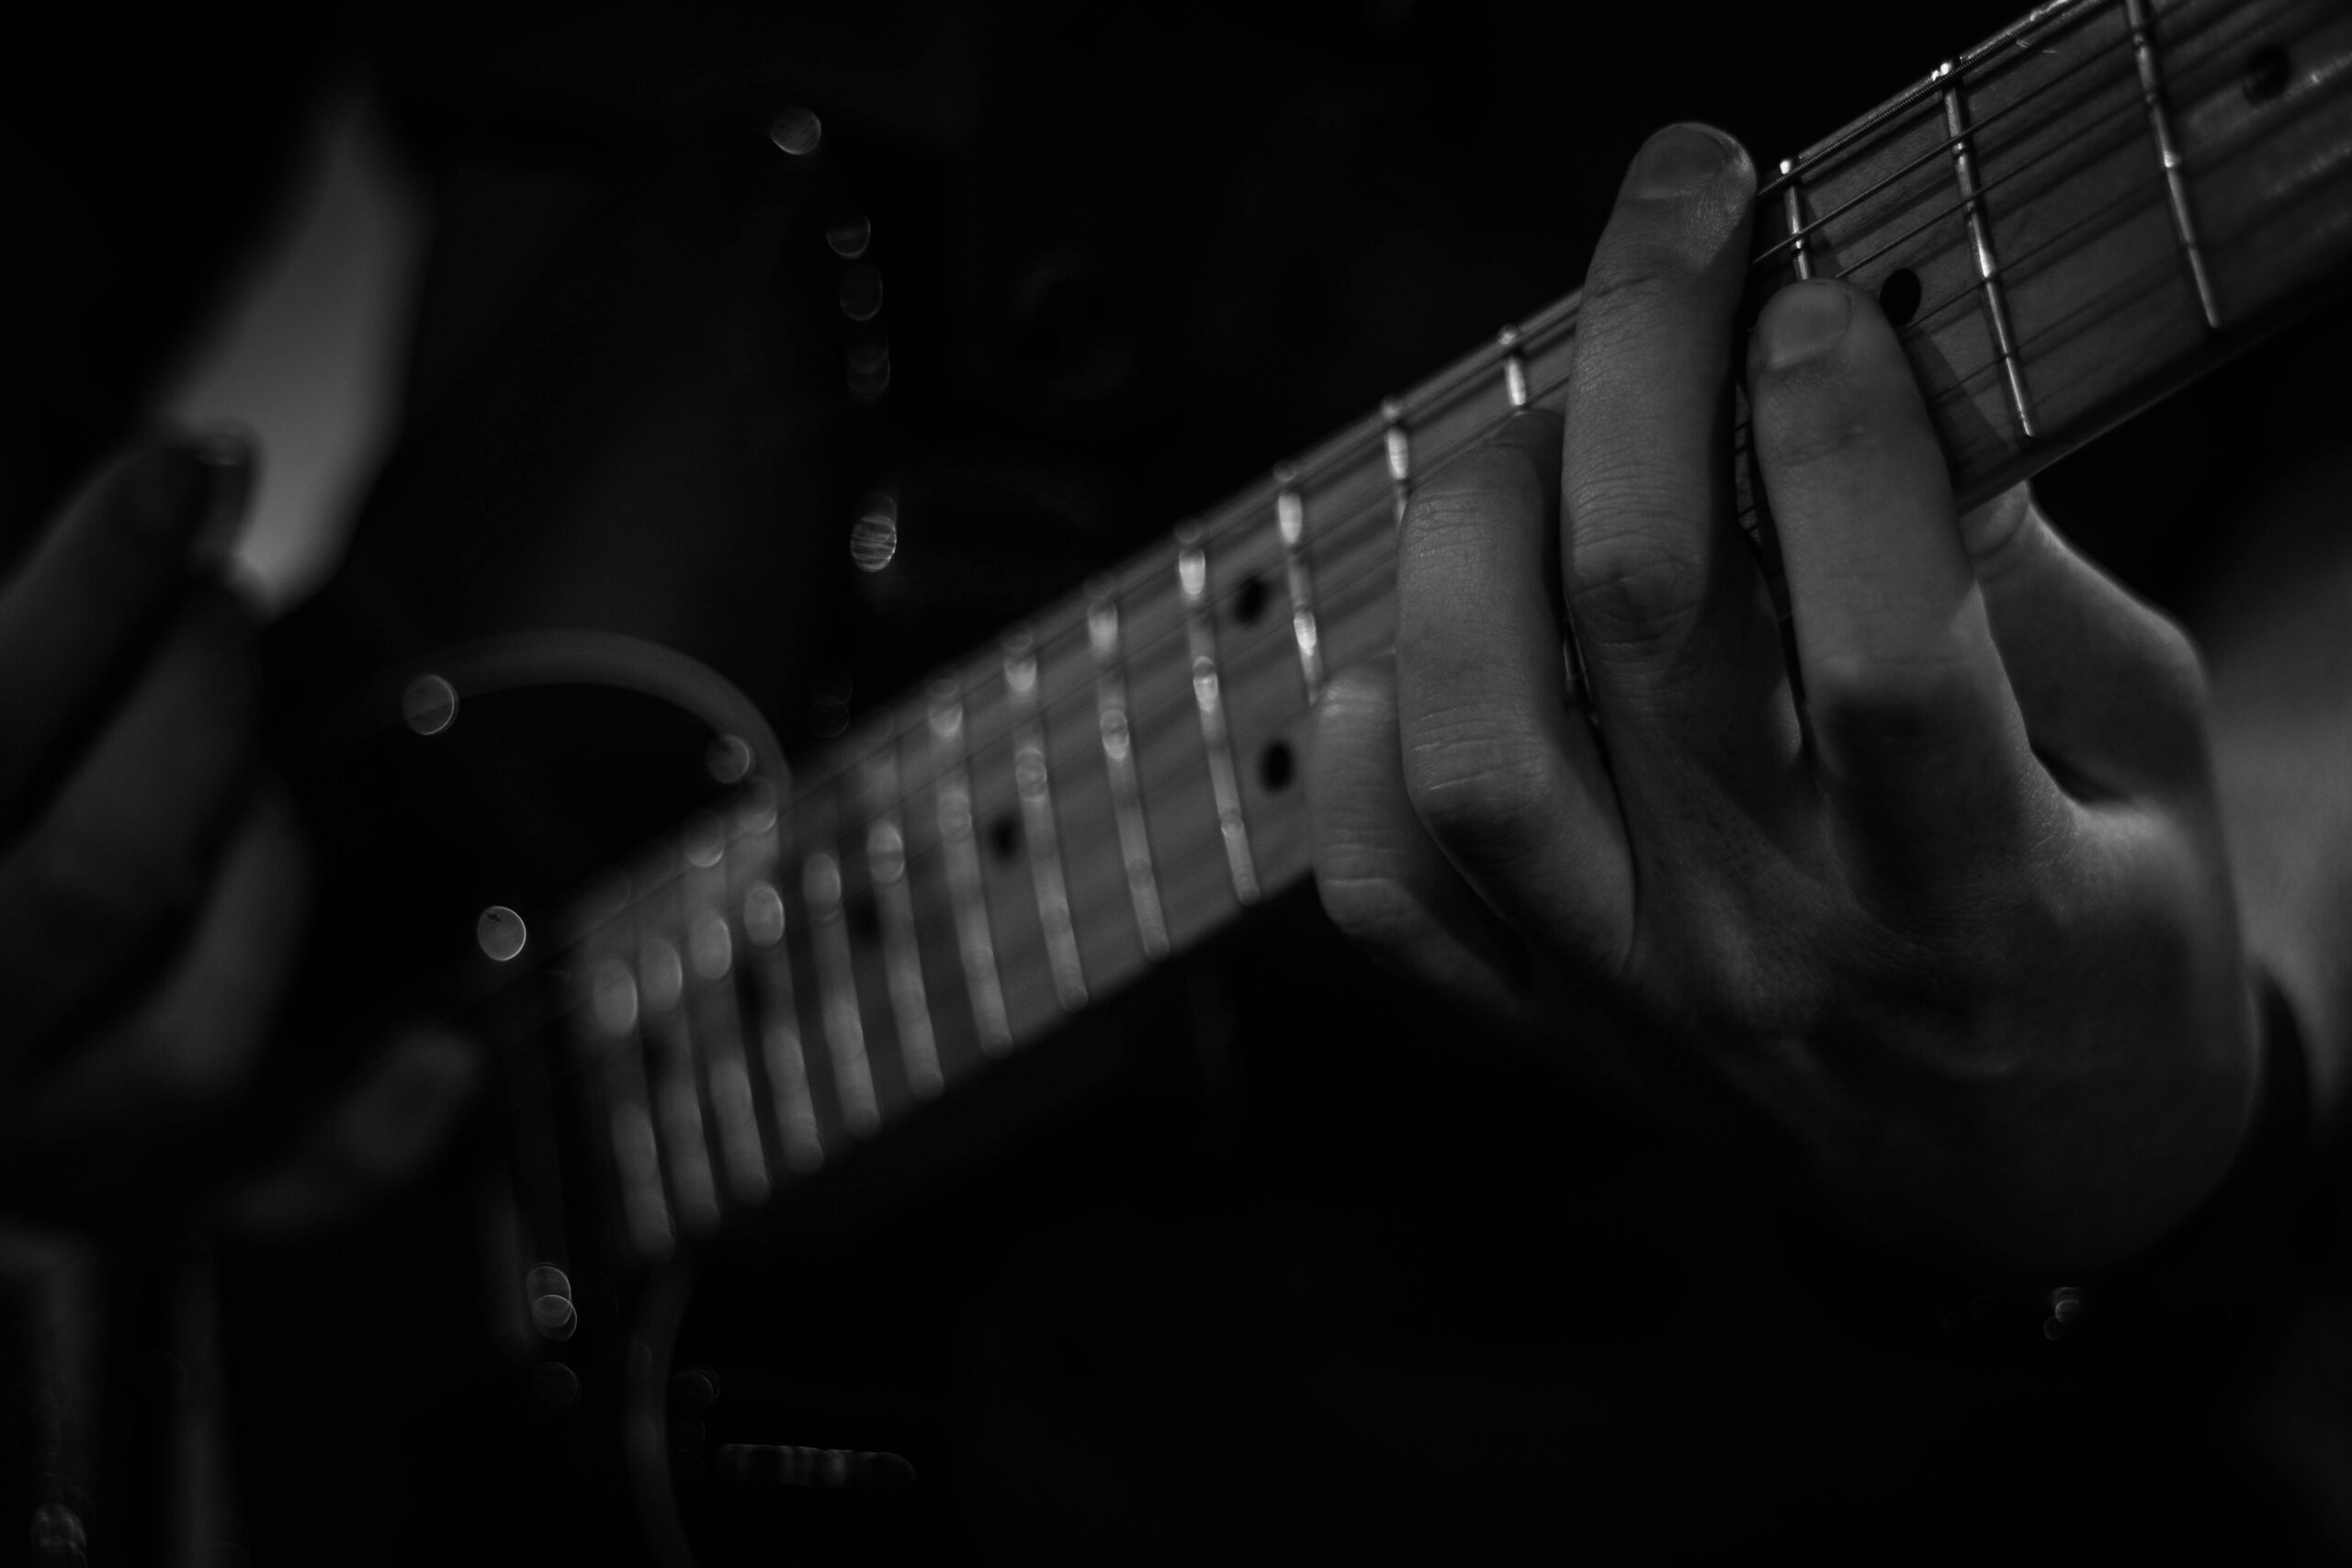 Person Playing Guitar Grayscale | 7 Tested Solutions To Help You Learn Guitar Through Video Games